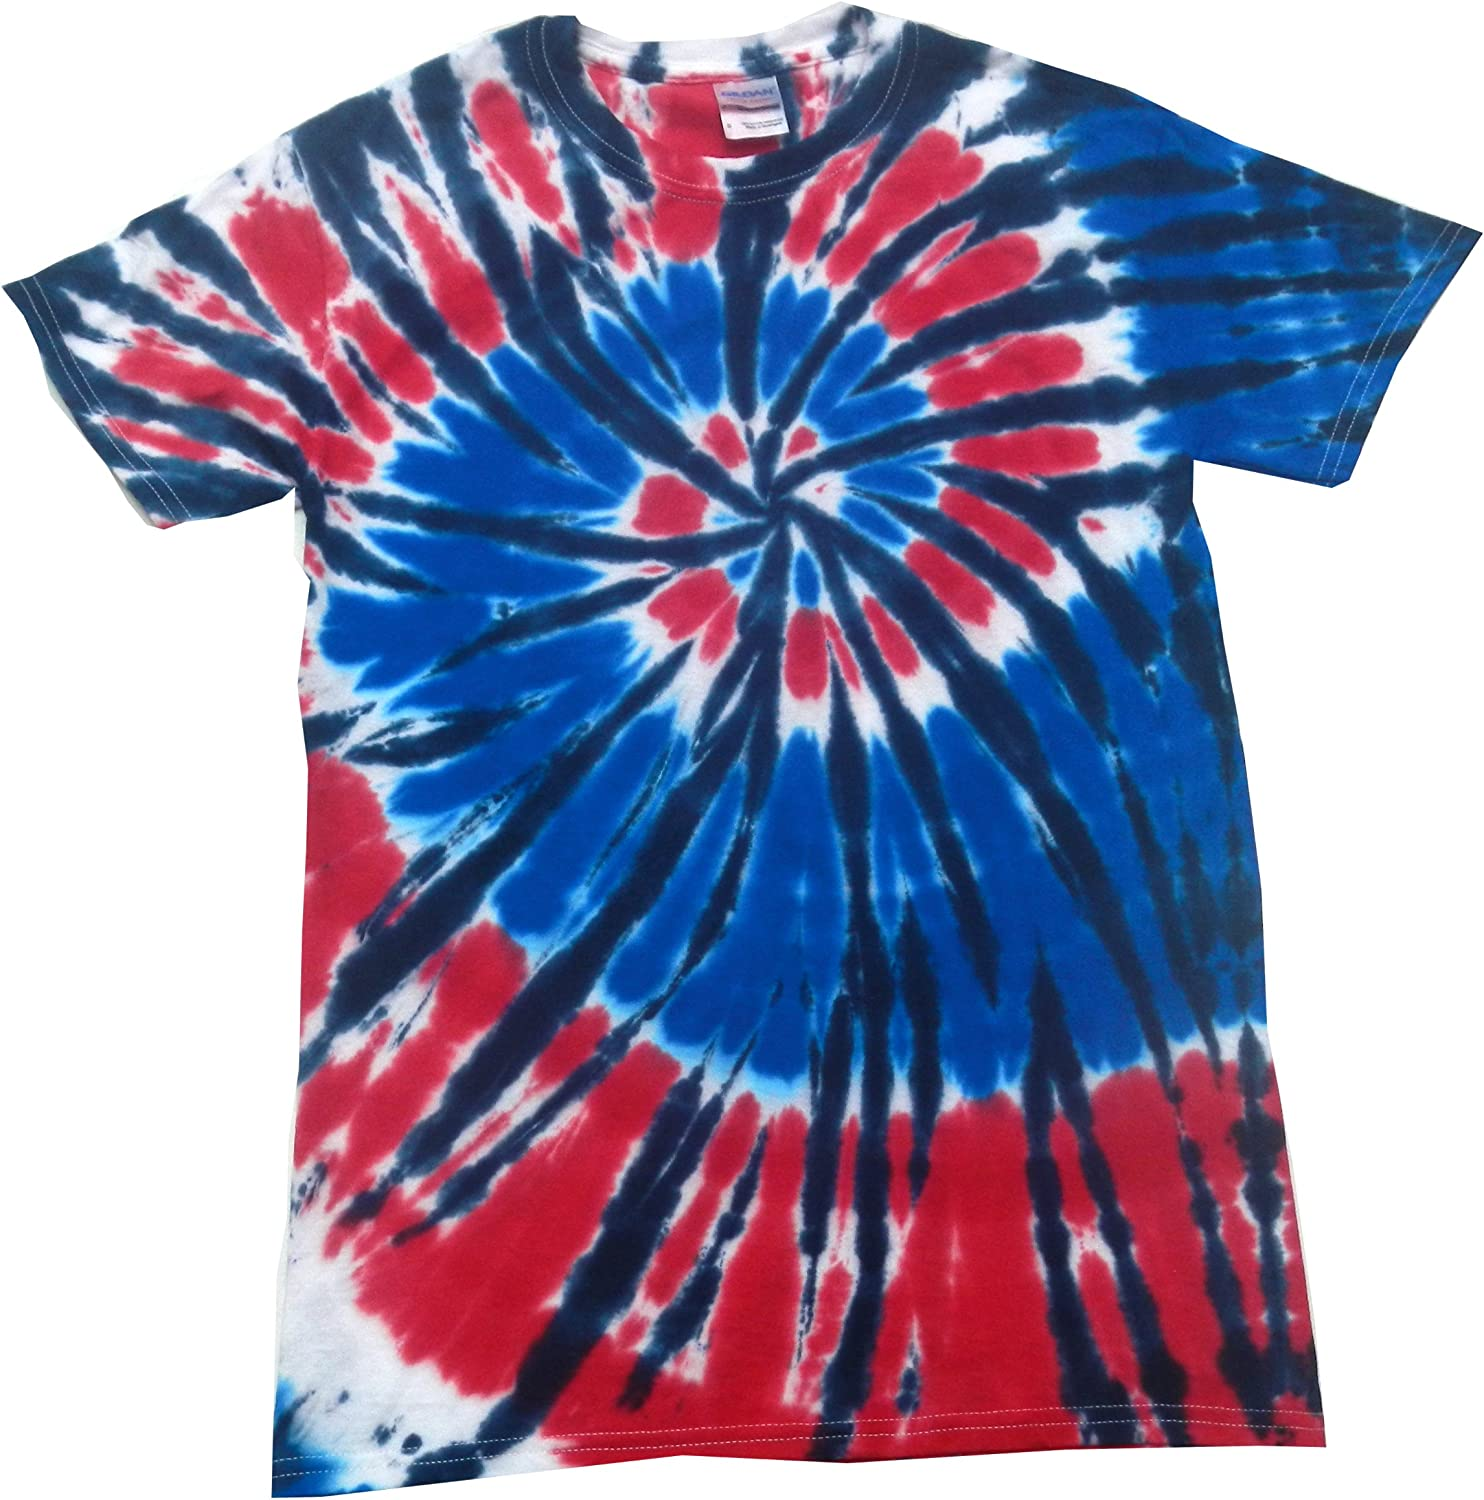 Medium Tie Dye Long Sleeve Button Down Collar Shirt American Eagle Outfitters Spiral Swirl Red White Blue Patriot Independence Murica